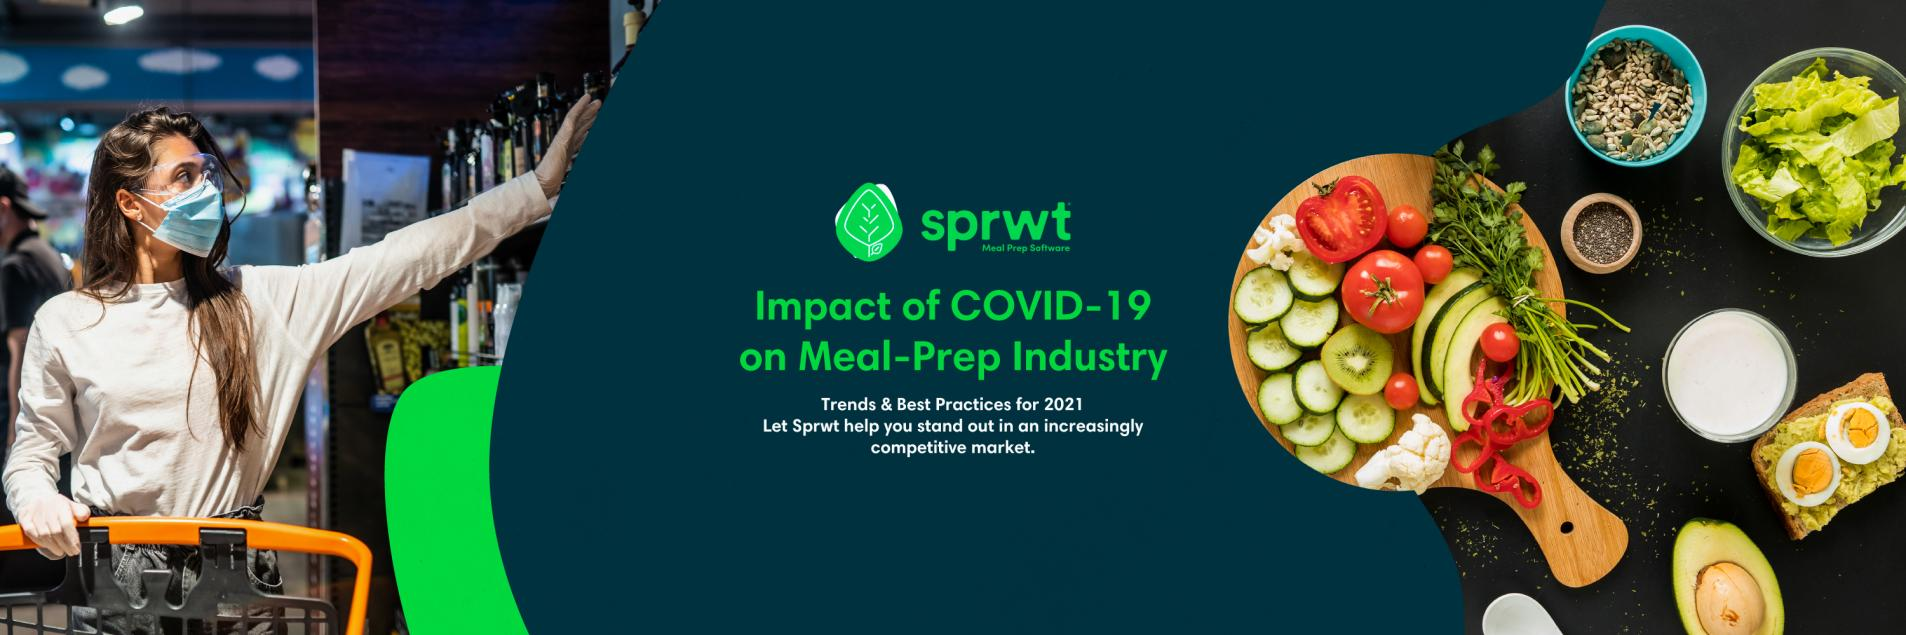 Impact of COVID-19 on Meal Kits Industry: what we've learned so far, and what you should know